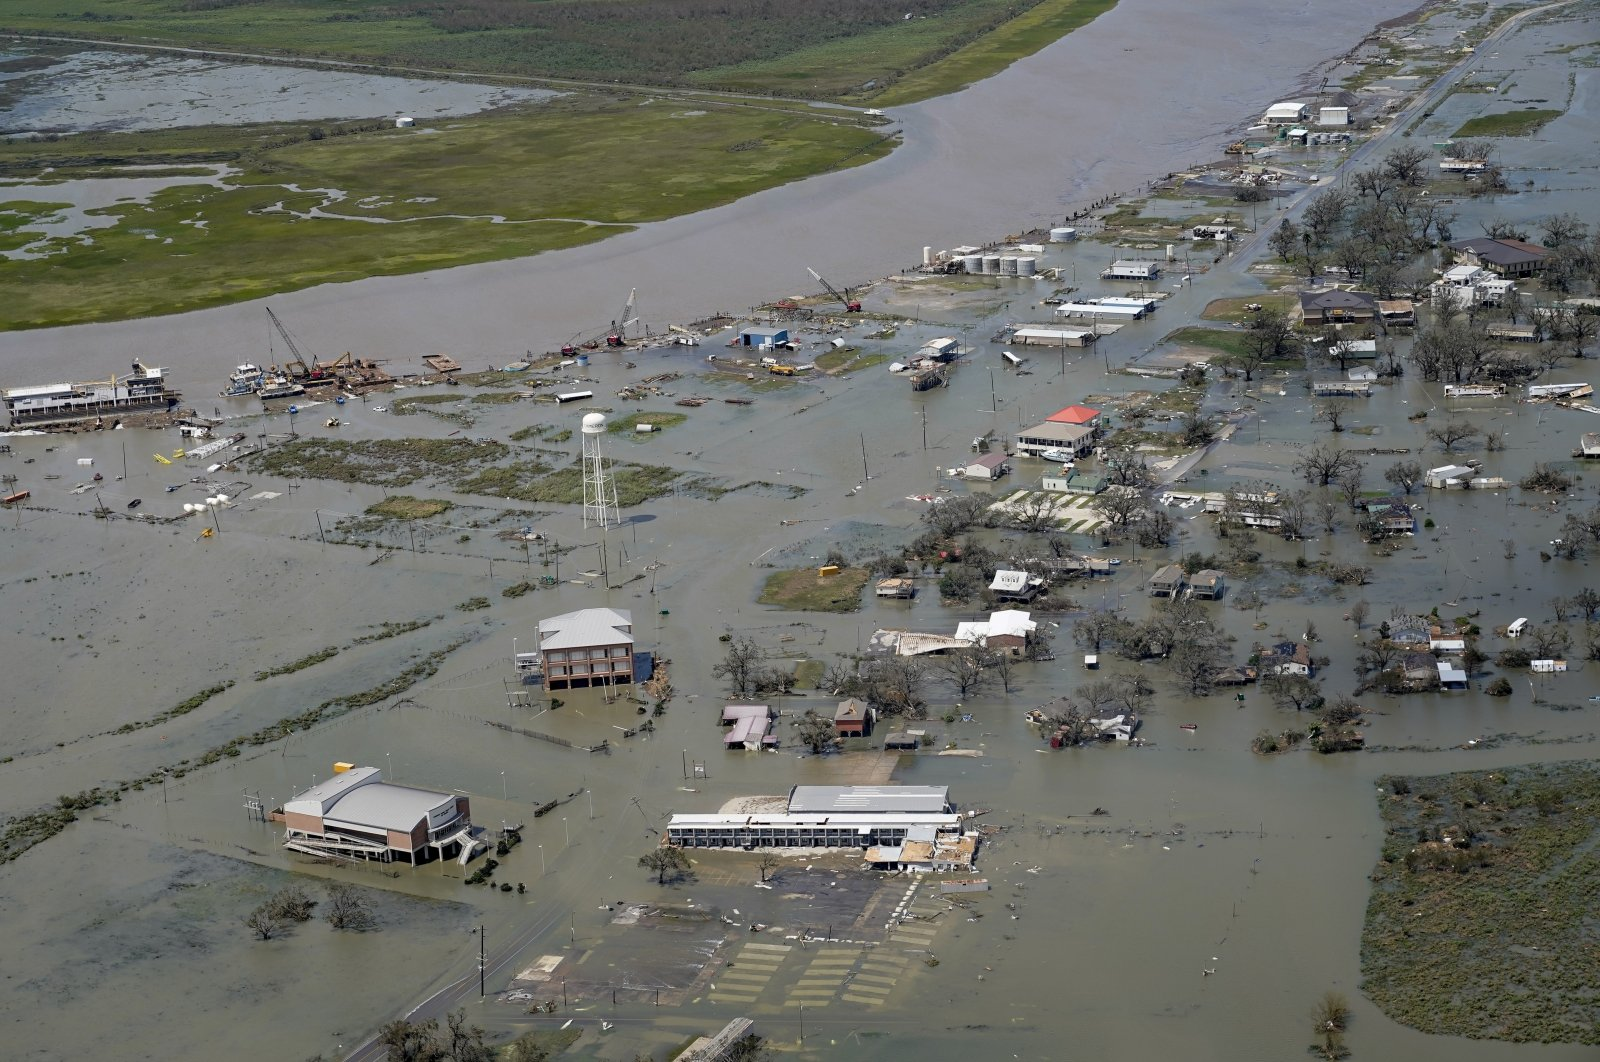 Buildings and homes are flooded in the aftermath of Hurricane Laura in Cameron, La. Laura, which jumped 65 mph (105 kph) in the day before landfall, tied the record for the biggest rapid intensification in the Gulf of Mexico on Aug. 27, 2020 (AP File Photo)